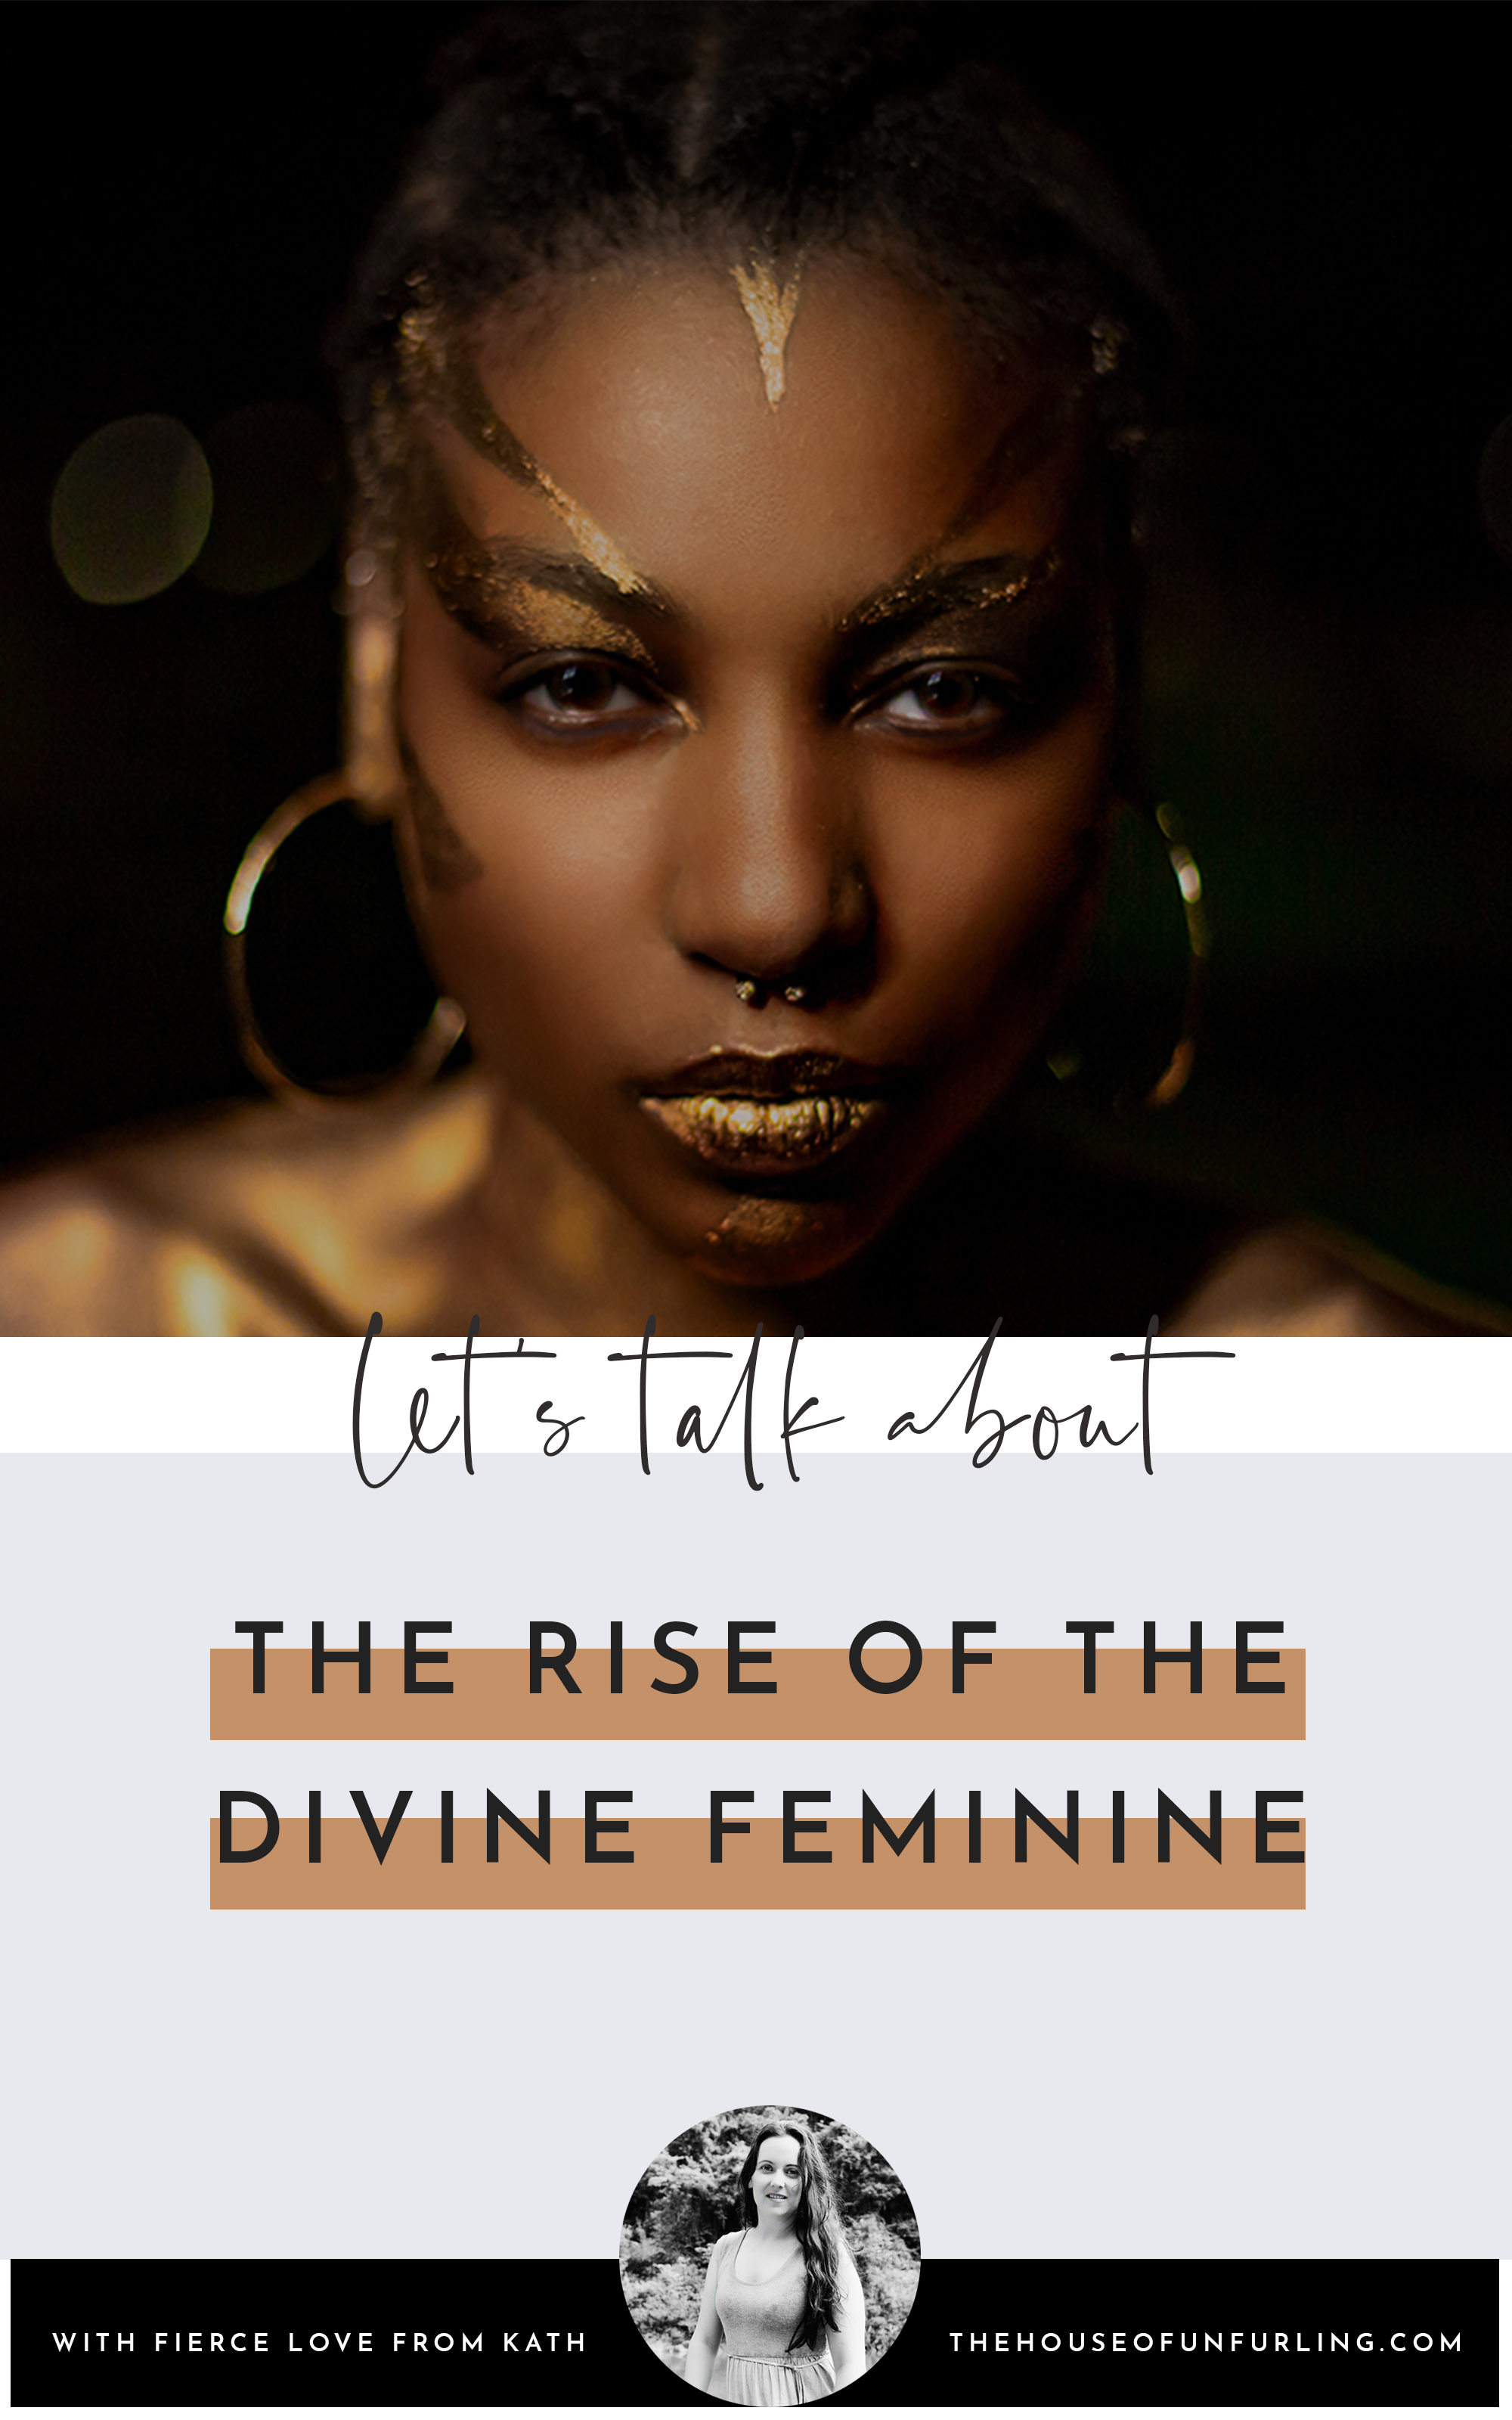 CLICK THROUGH TO READ: - the rise of the divine feminine, and where we're going with this. From The Priestess Path. With fierce love, Kath - kathleensaelens.com